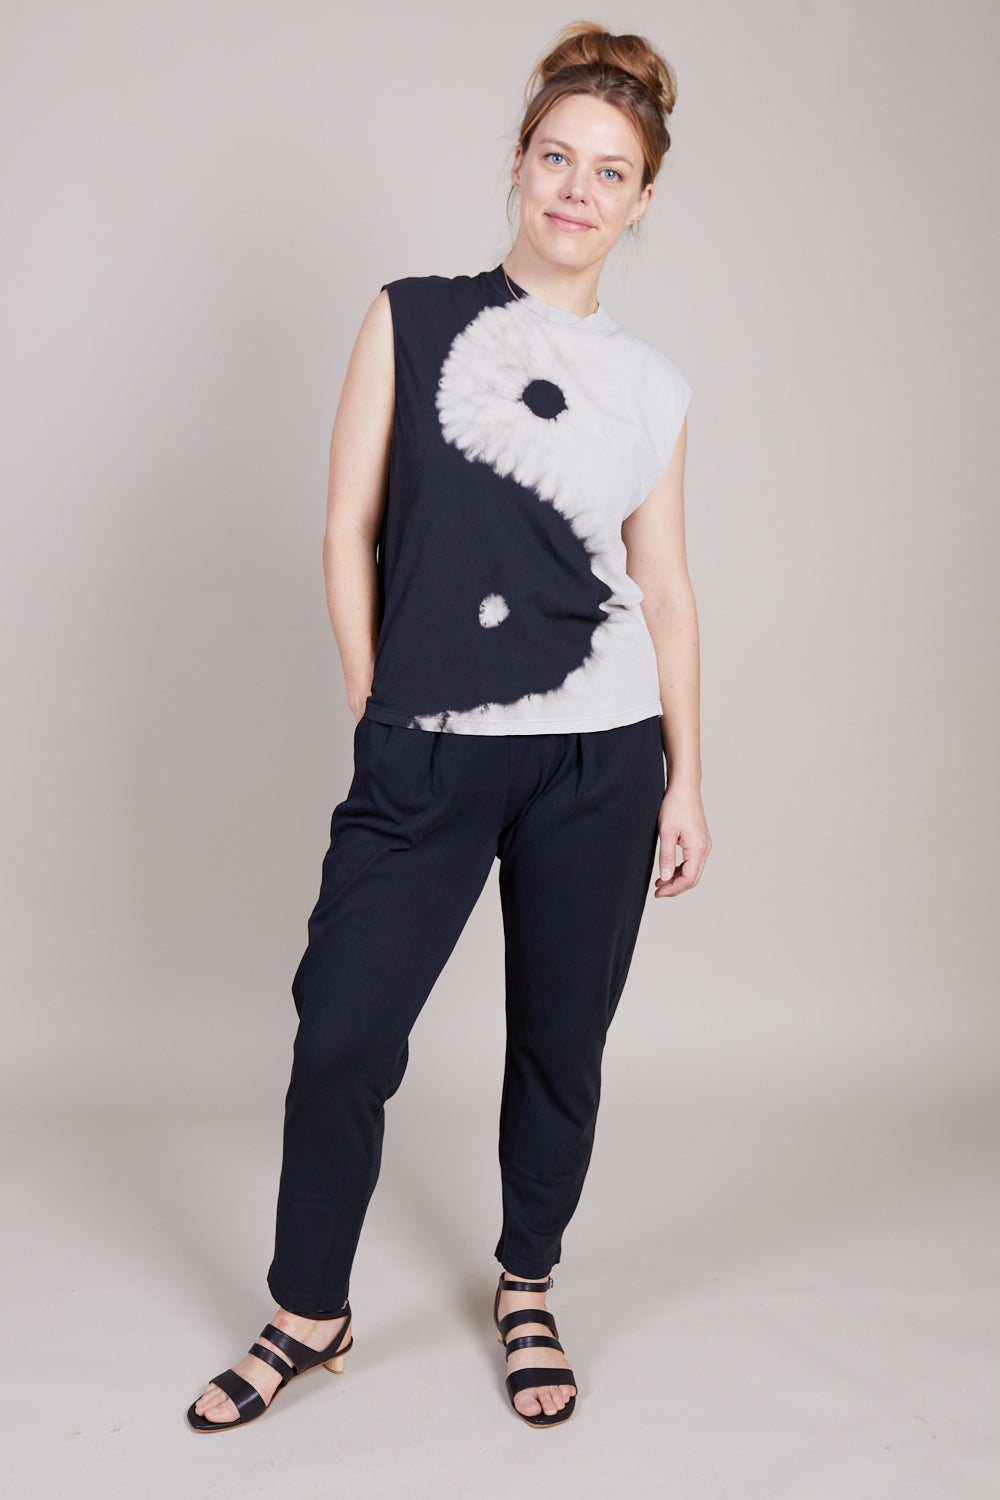 Moc Muscle Tee in Black and White Yin Yang